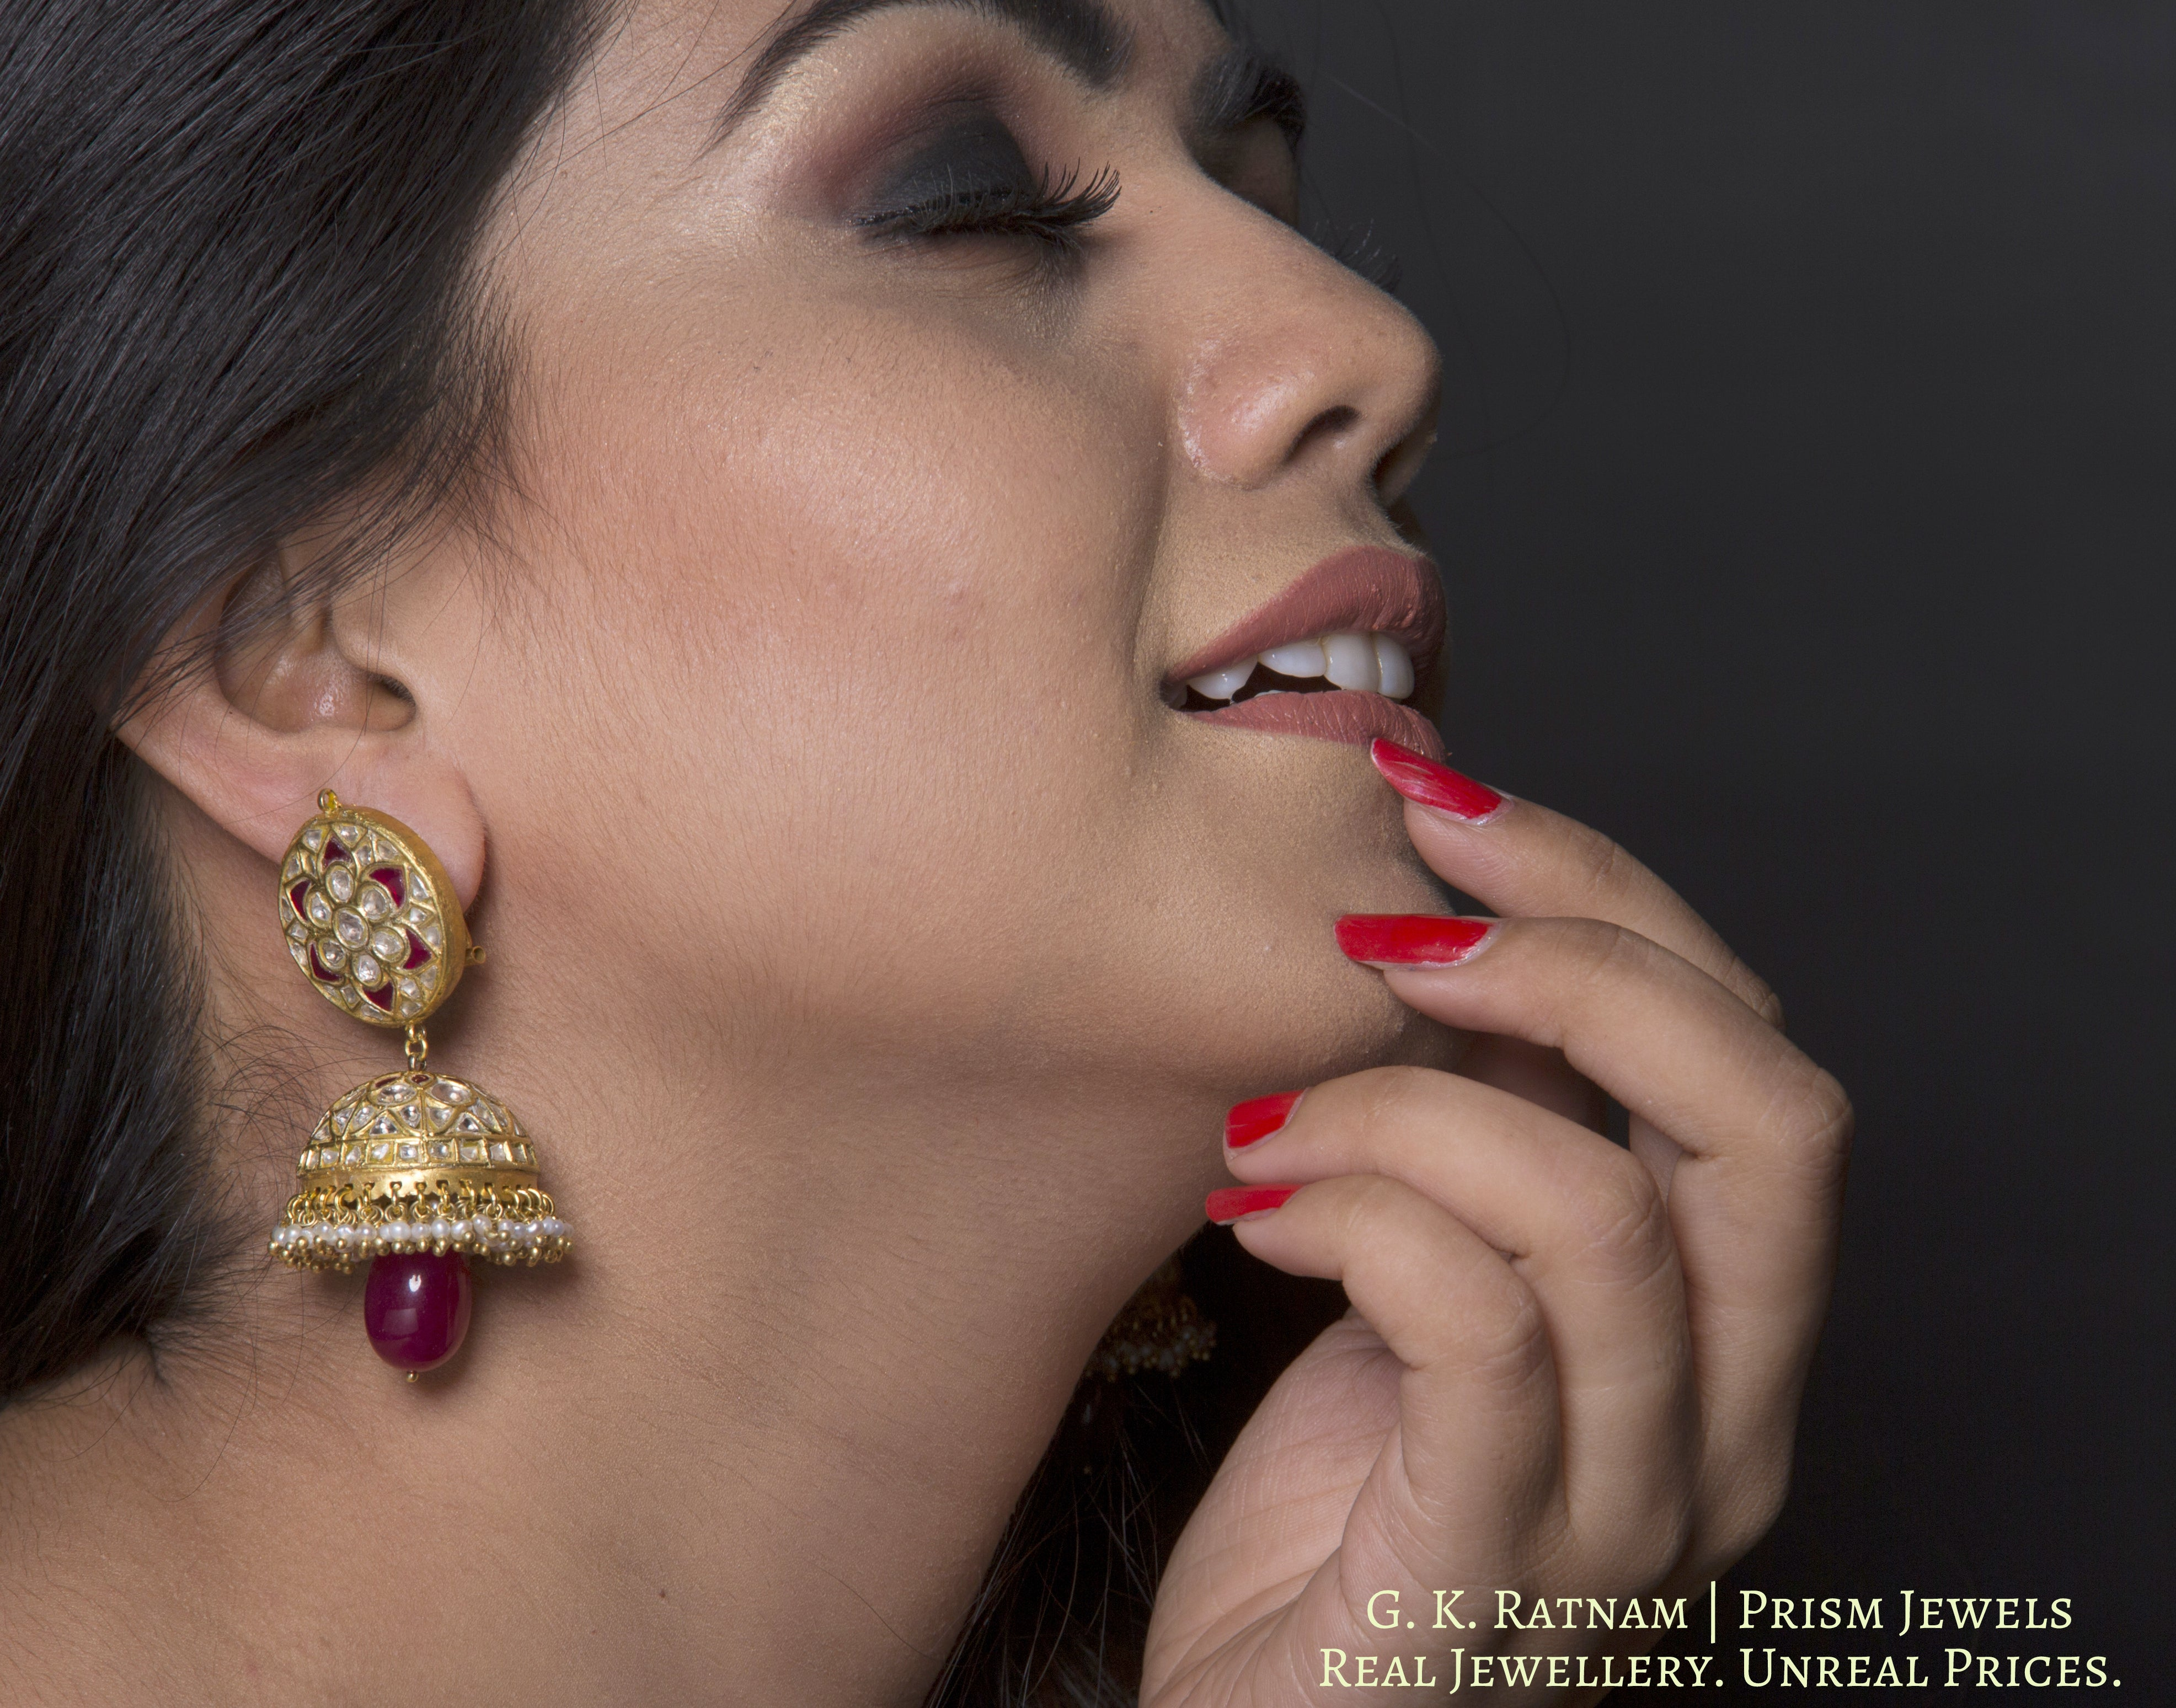 23k Gold and Diamond Polki red Jhumki Earring Pair with natural freshwater pearls - gold diamond polki kundan meena jadau jewellery